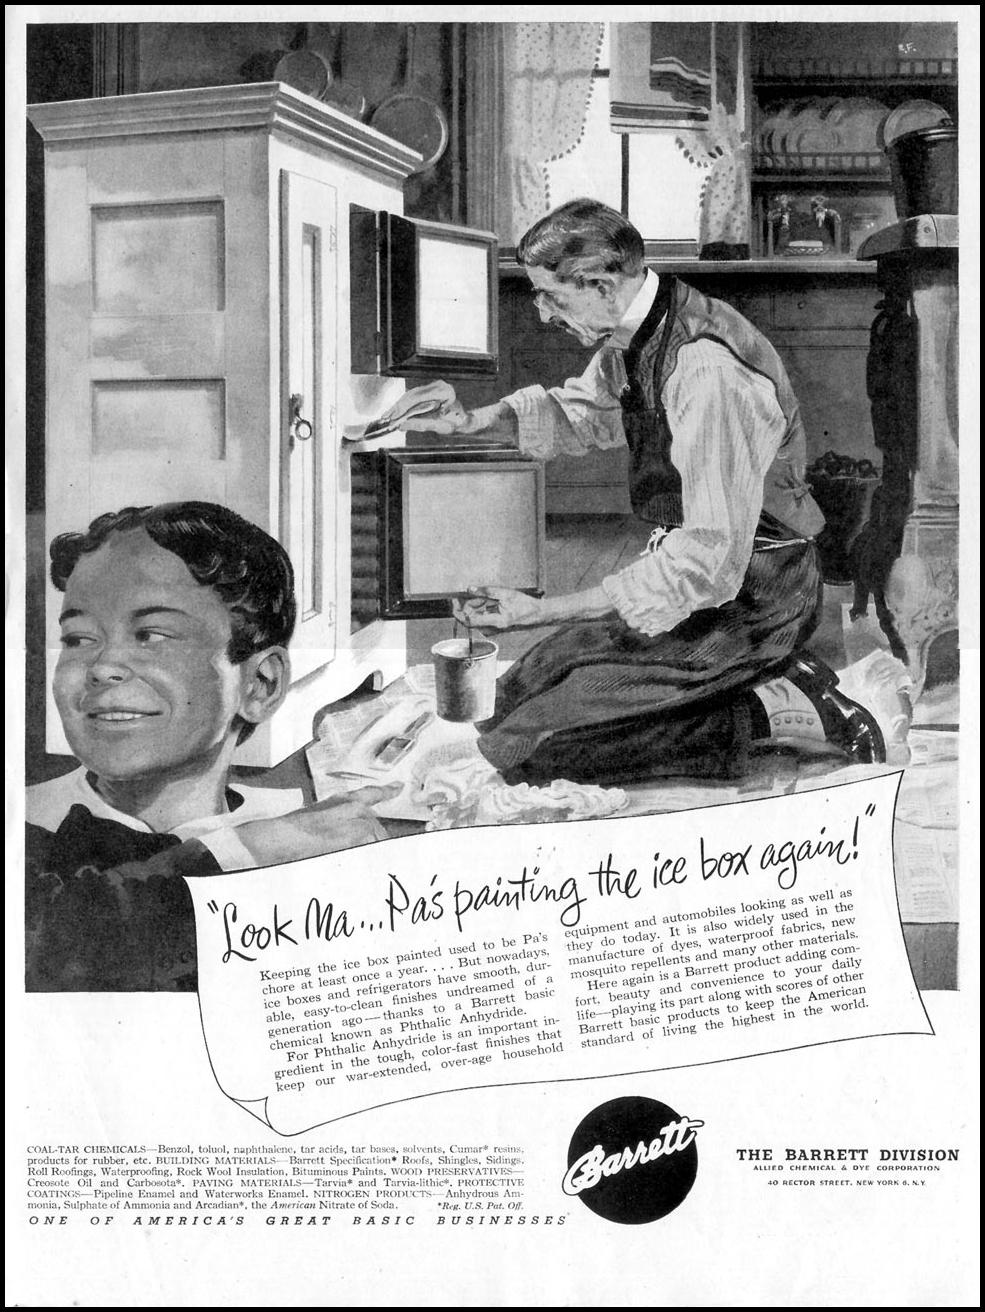 BARRETT COAL-TAR CHEMICALS SATURDAY EVENING POST 10/06/1945 p. 123